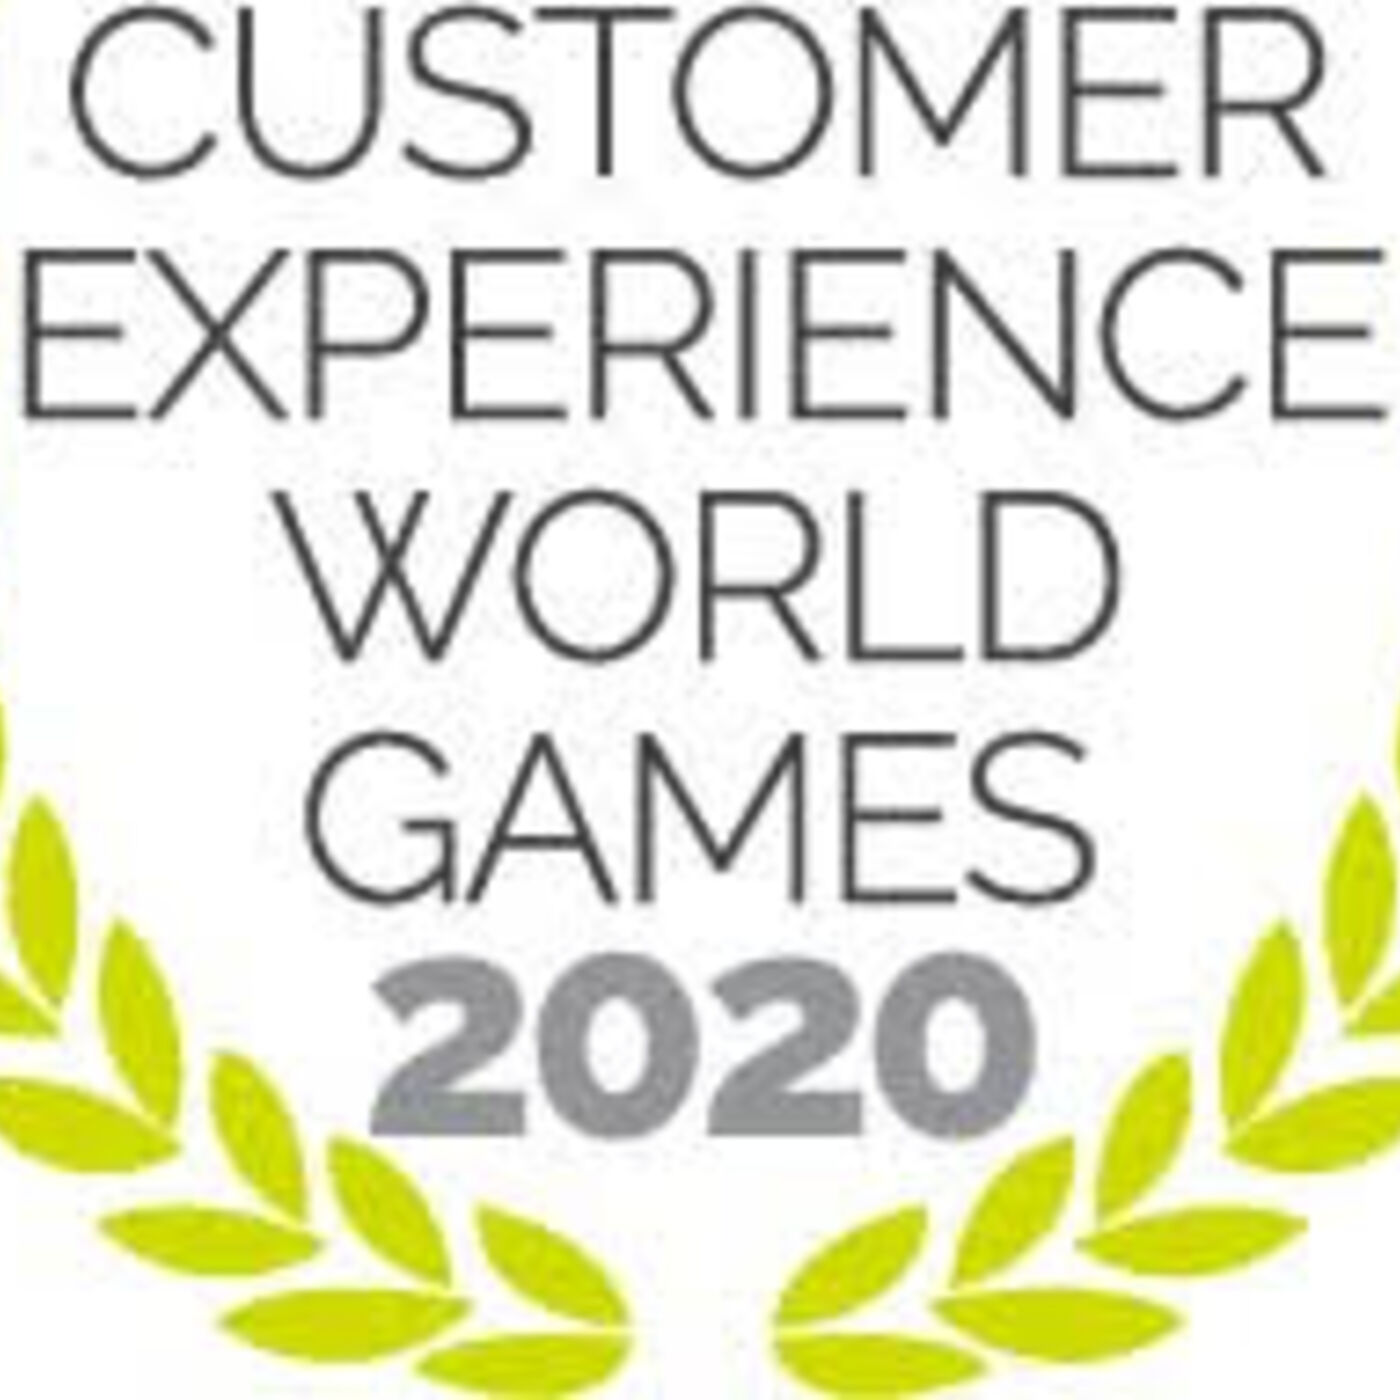 Customer Experience Superheroes - Series 3 Episode 1 Customer Experience World Games